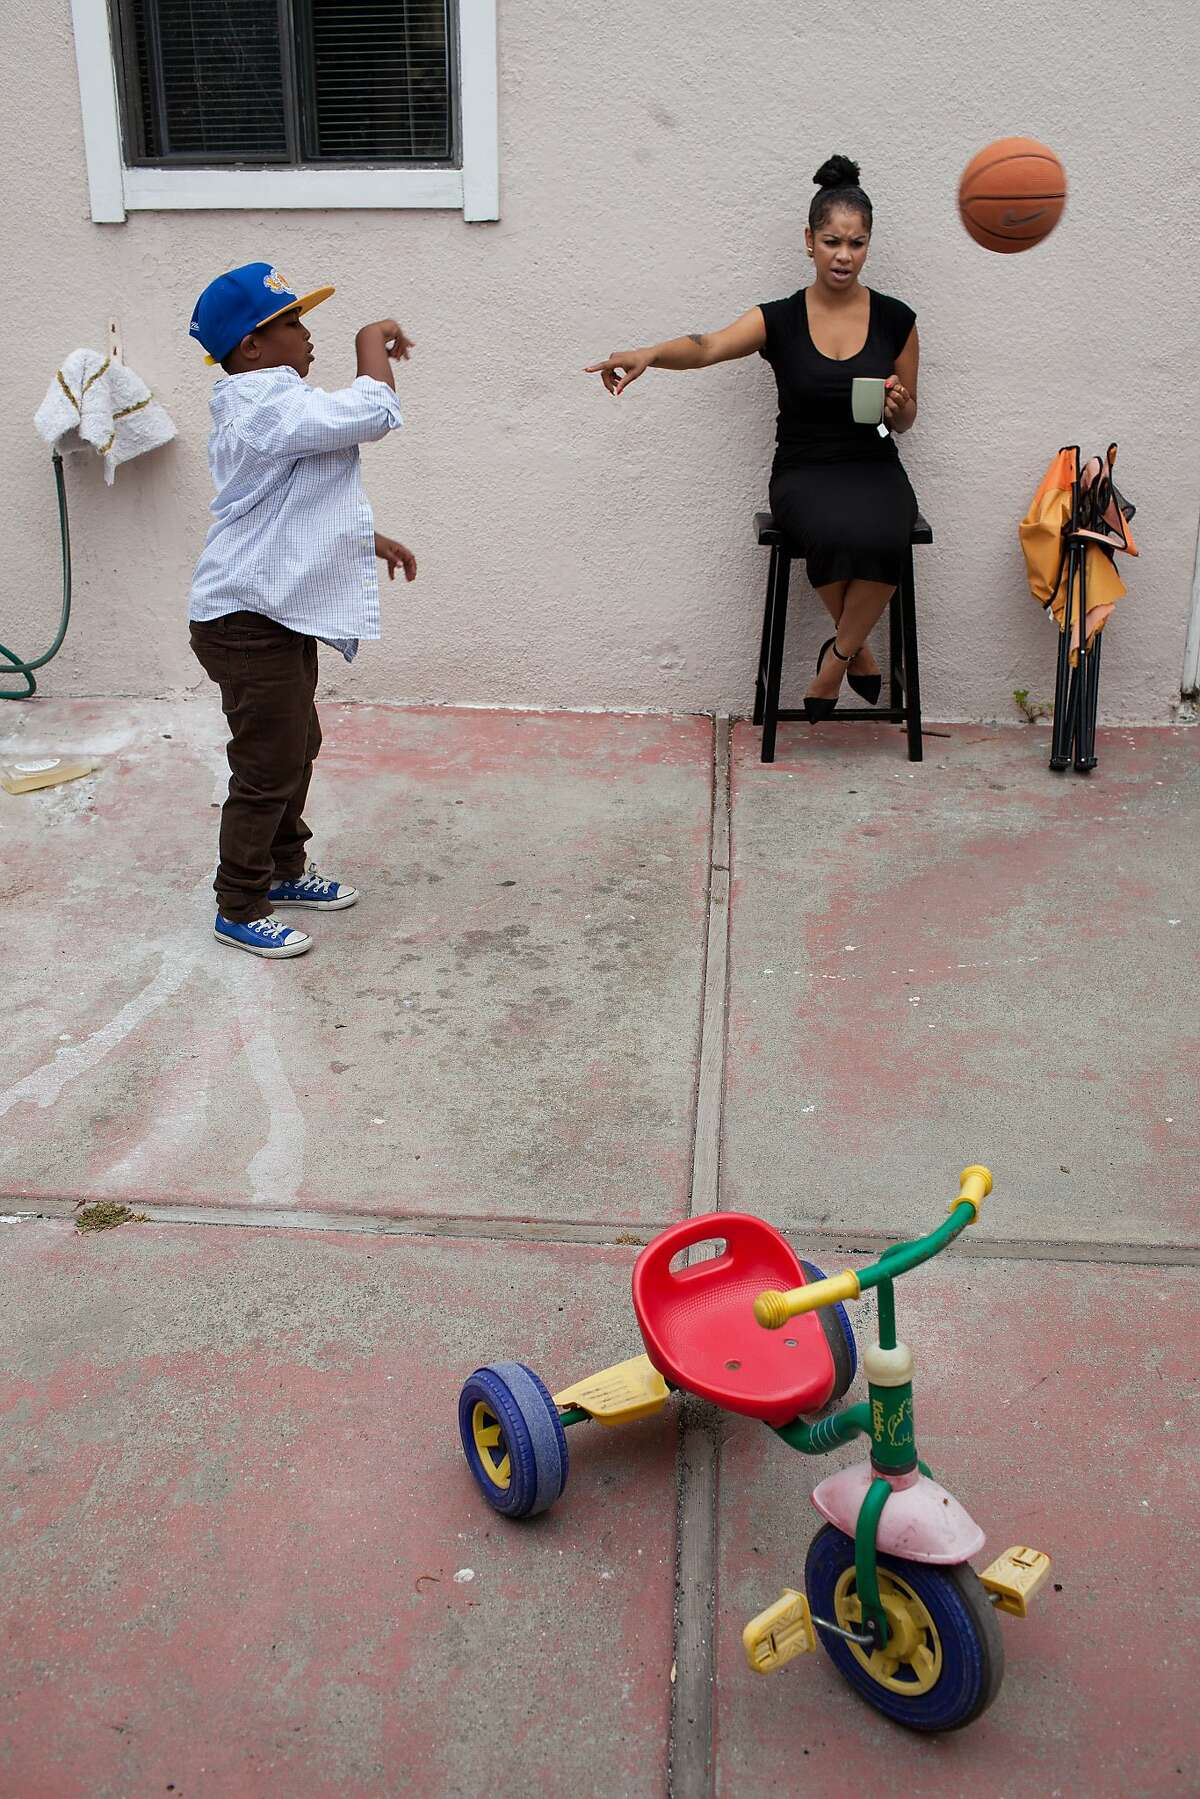 Essence Hope, 29, talks to her son Bryce, 6, as he plays basketball in the morning at their apartment in Oakland, Calif. on Friday, May 23, 2014. Hope has worked minimum wage jobs ever since she left high school.